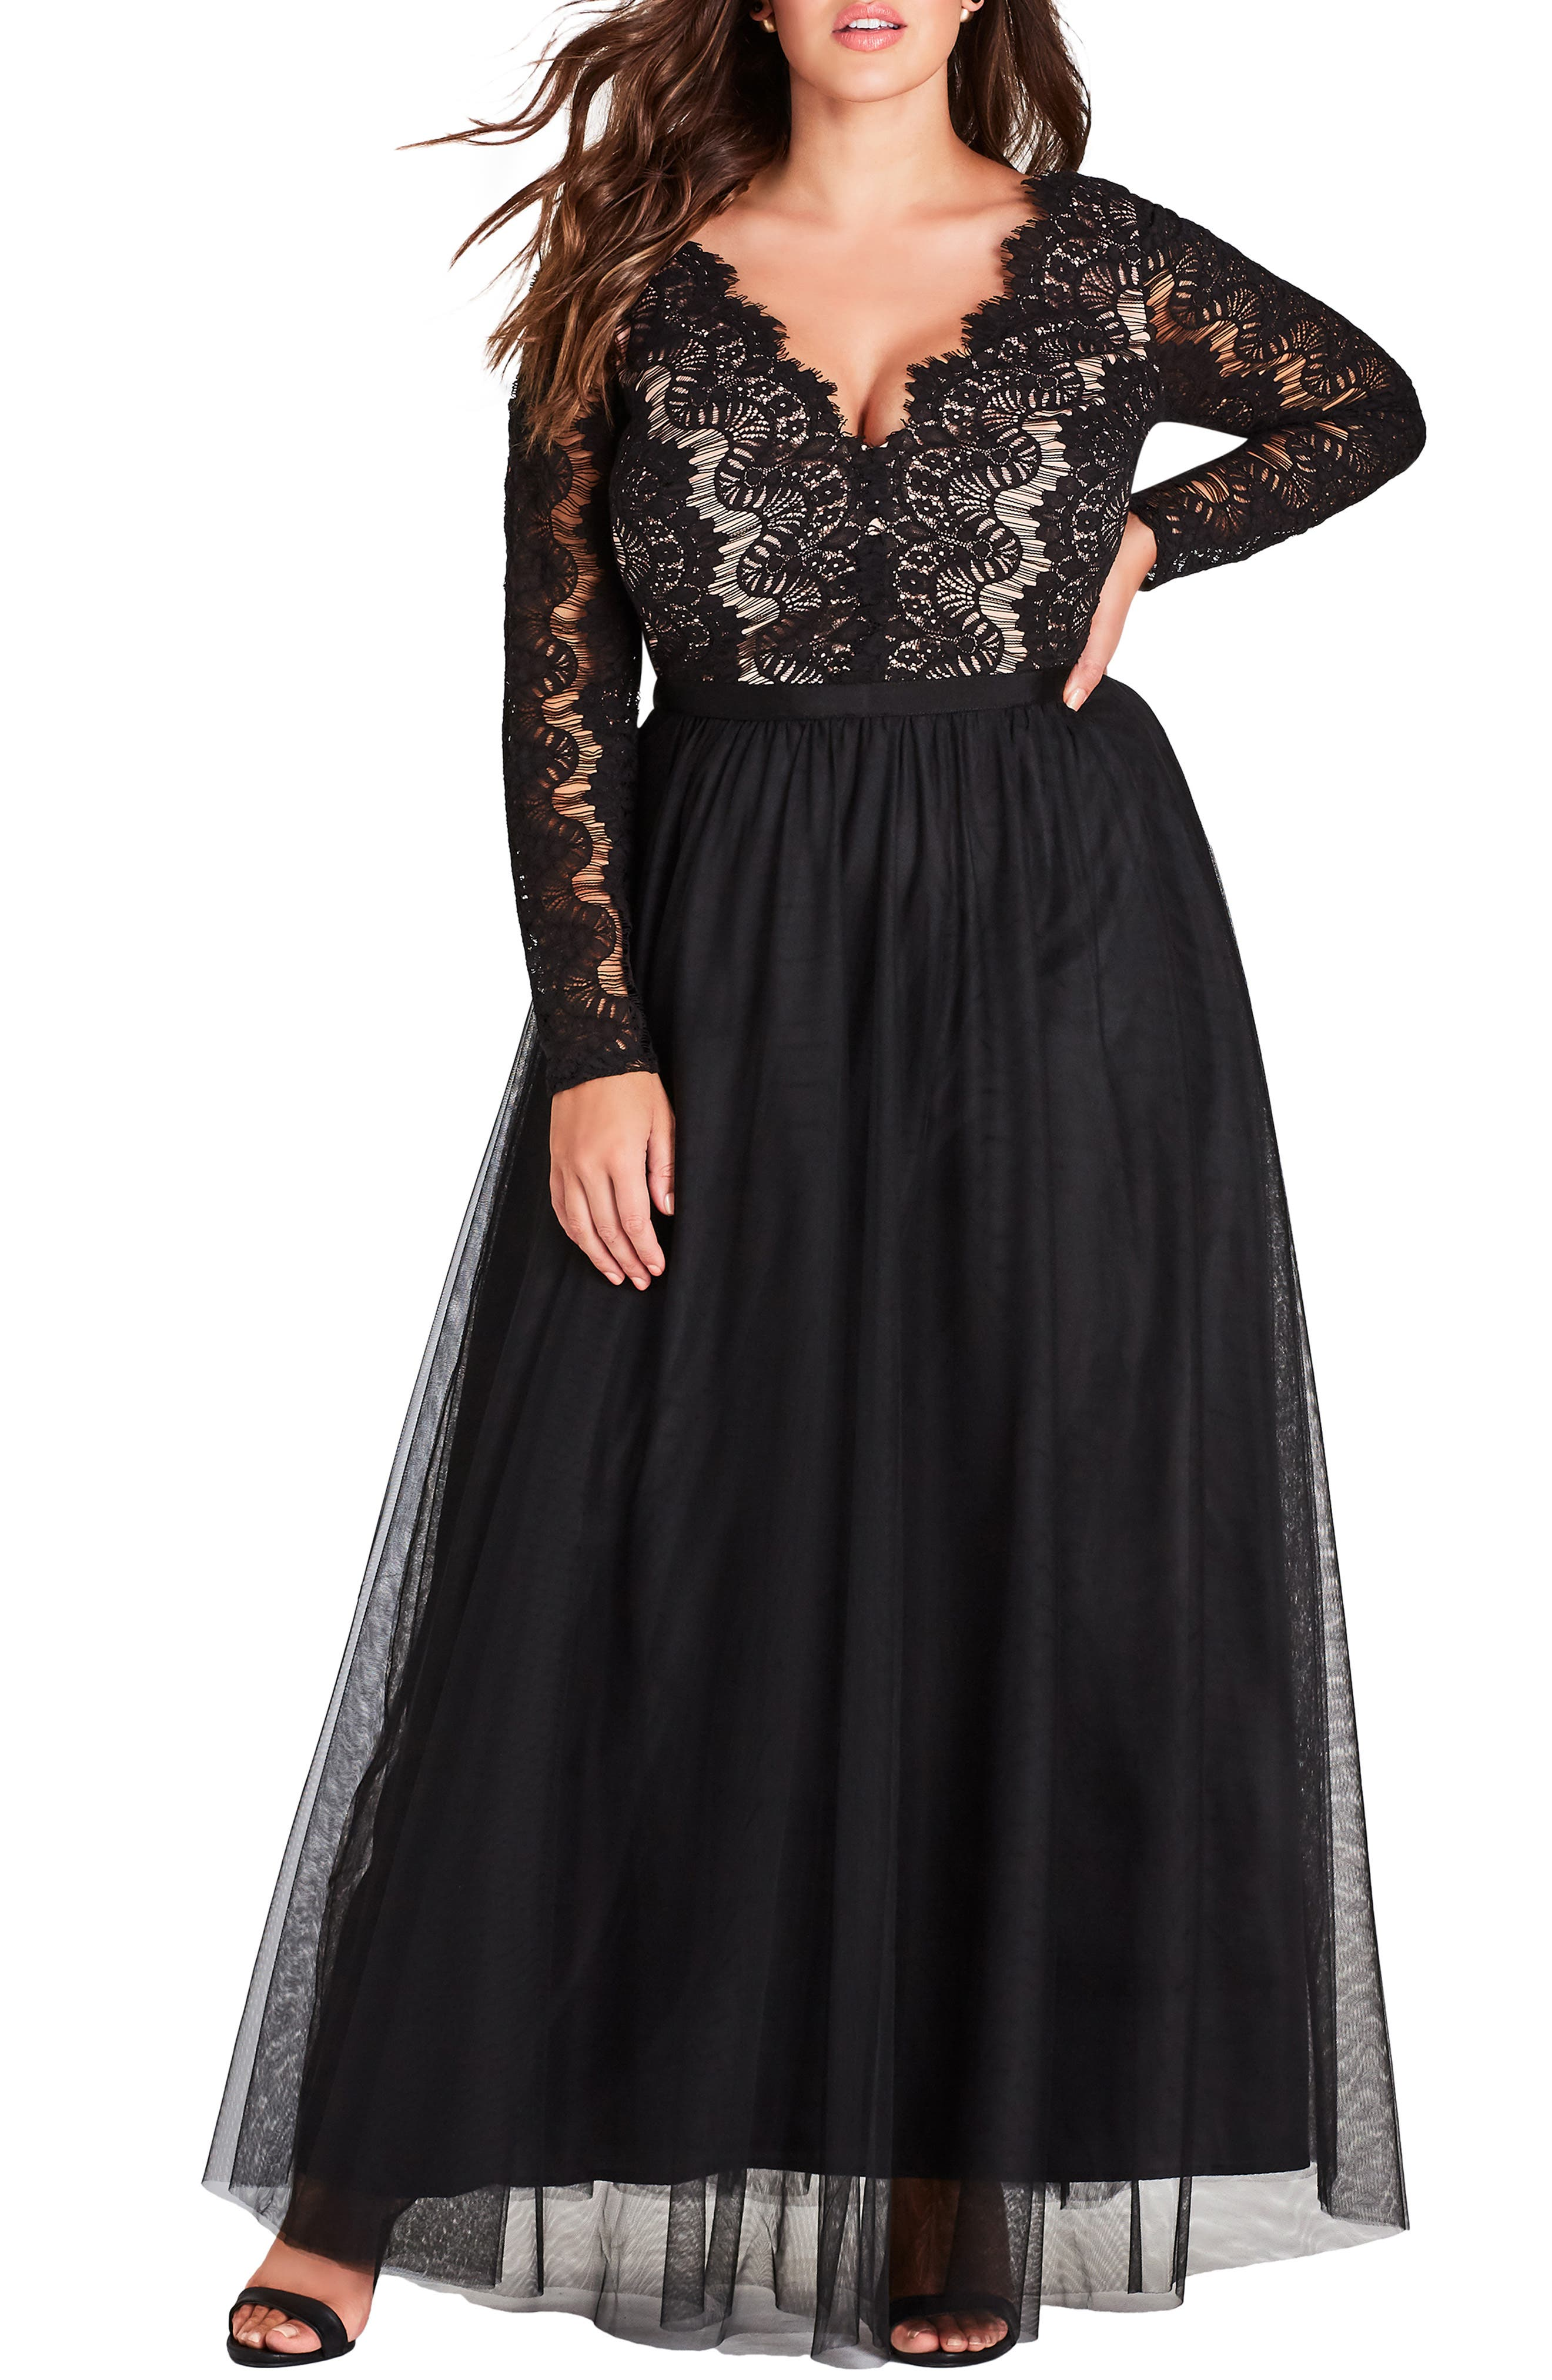 Vintage Evening Dresses and Formal Evening Gowns Plus Size Womens City Chic Rare Beauty Maxi Dress Size XX-Large - Black $169.00 AT vintagedancer.com